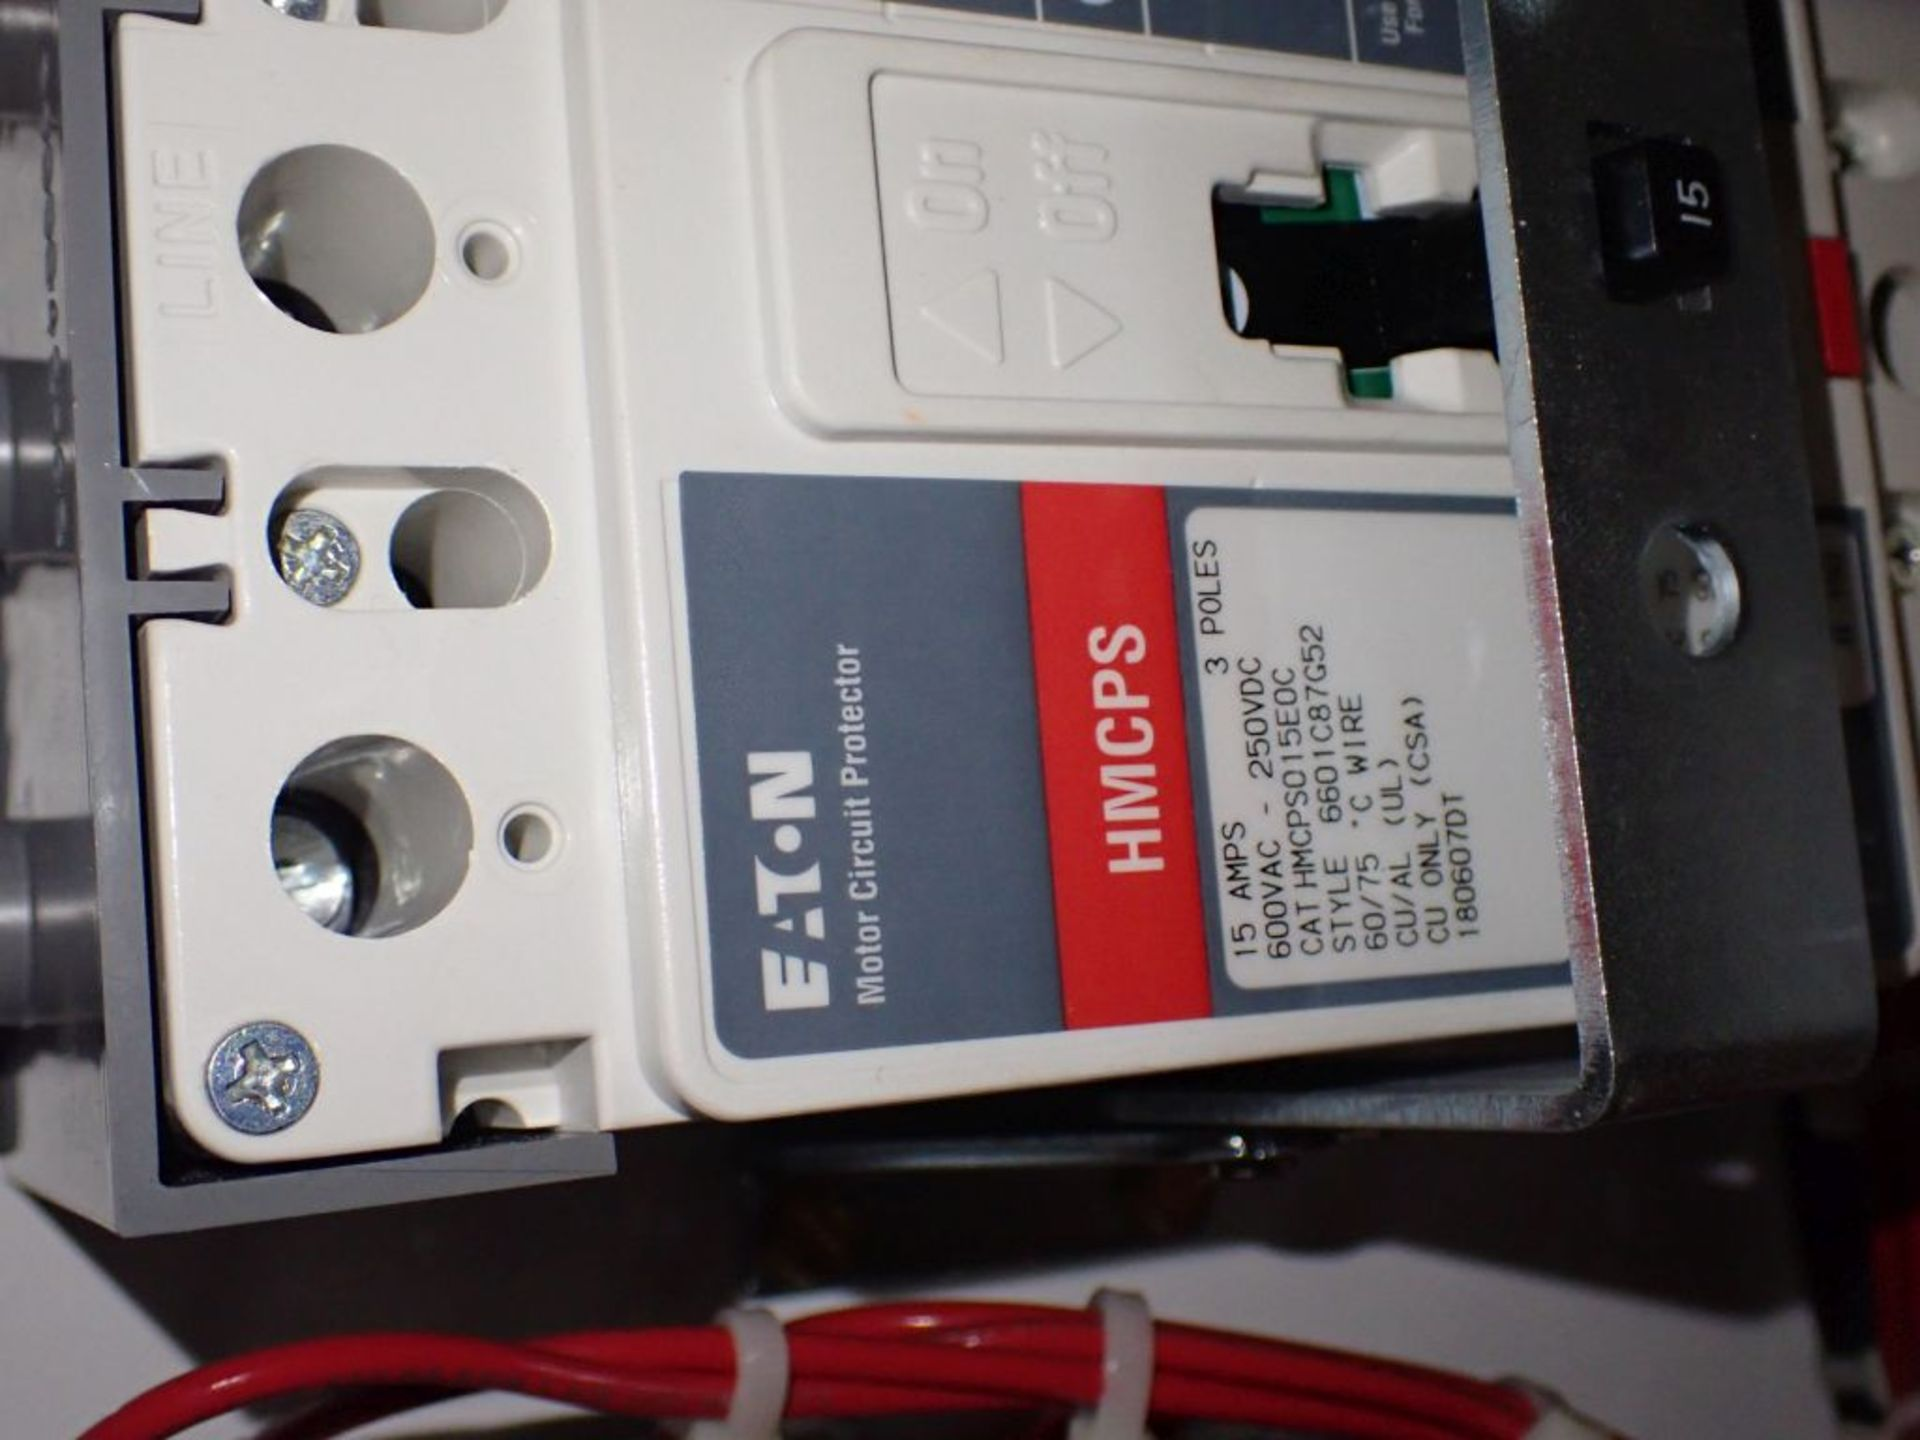 Eaton Freedom 2100 Series Motor Control Center | (11) F206-30A-10HP; (5) F206-15A-10HP; (1) SVX900- - Image 82 of 102